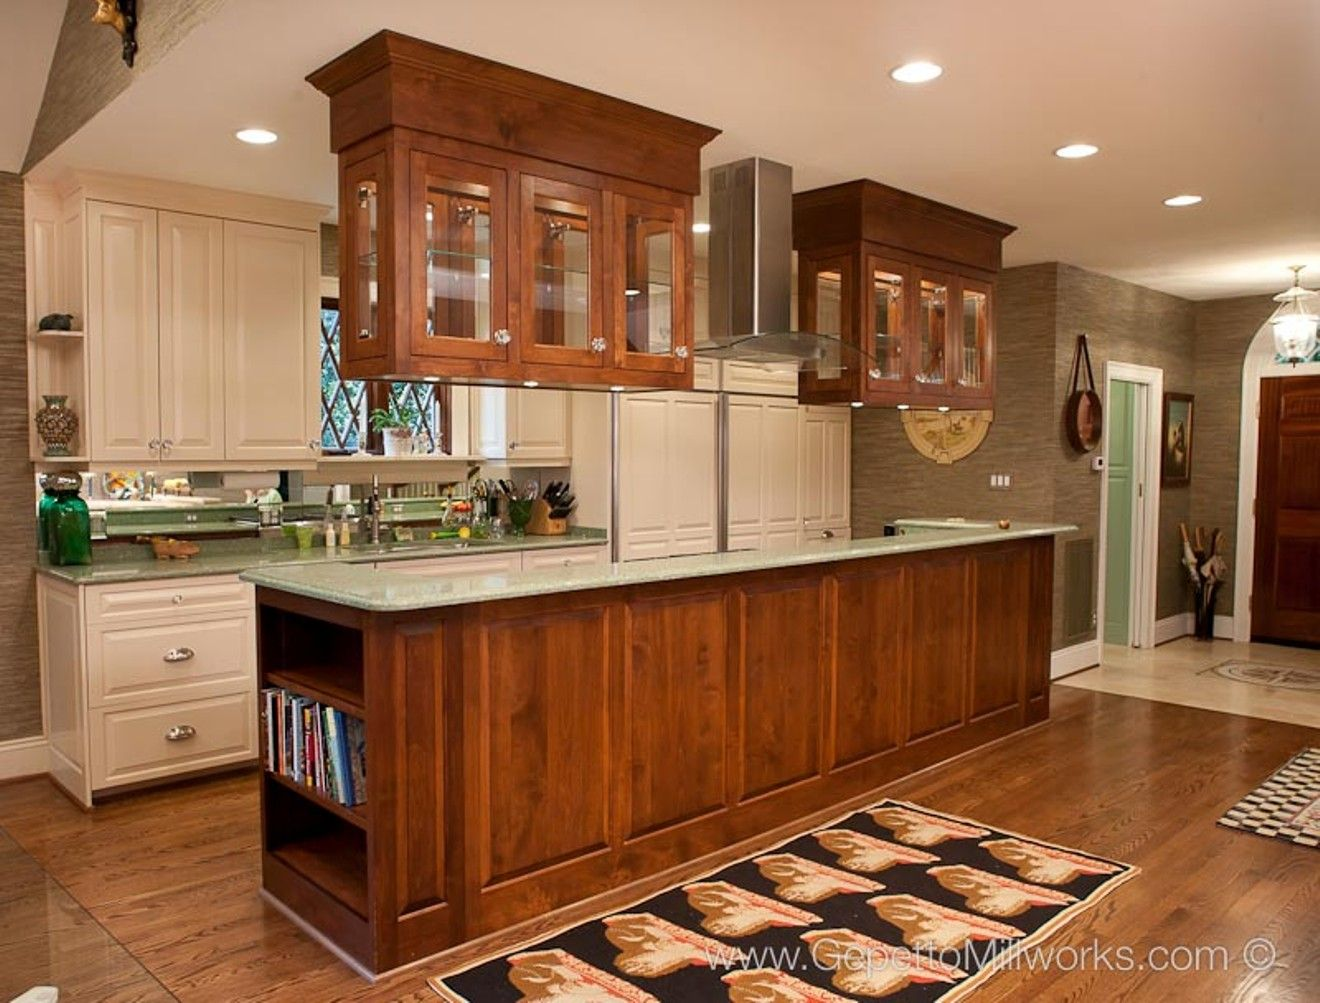 Kitchen Cabinets Design Ideas Photos kitchen hanging cabinet design designs of kitchen hanging cabinets